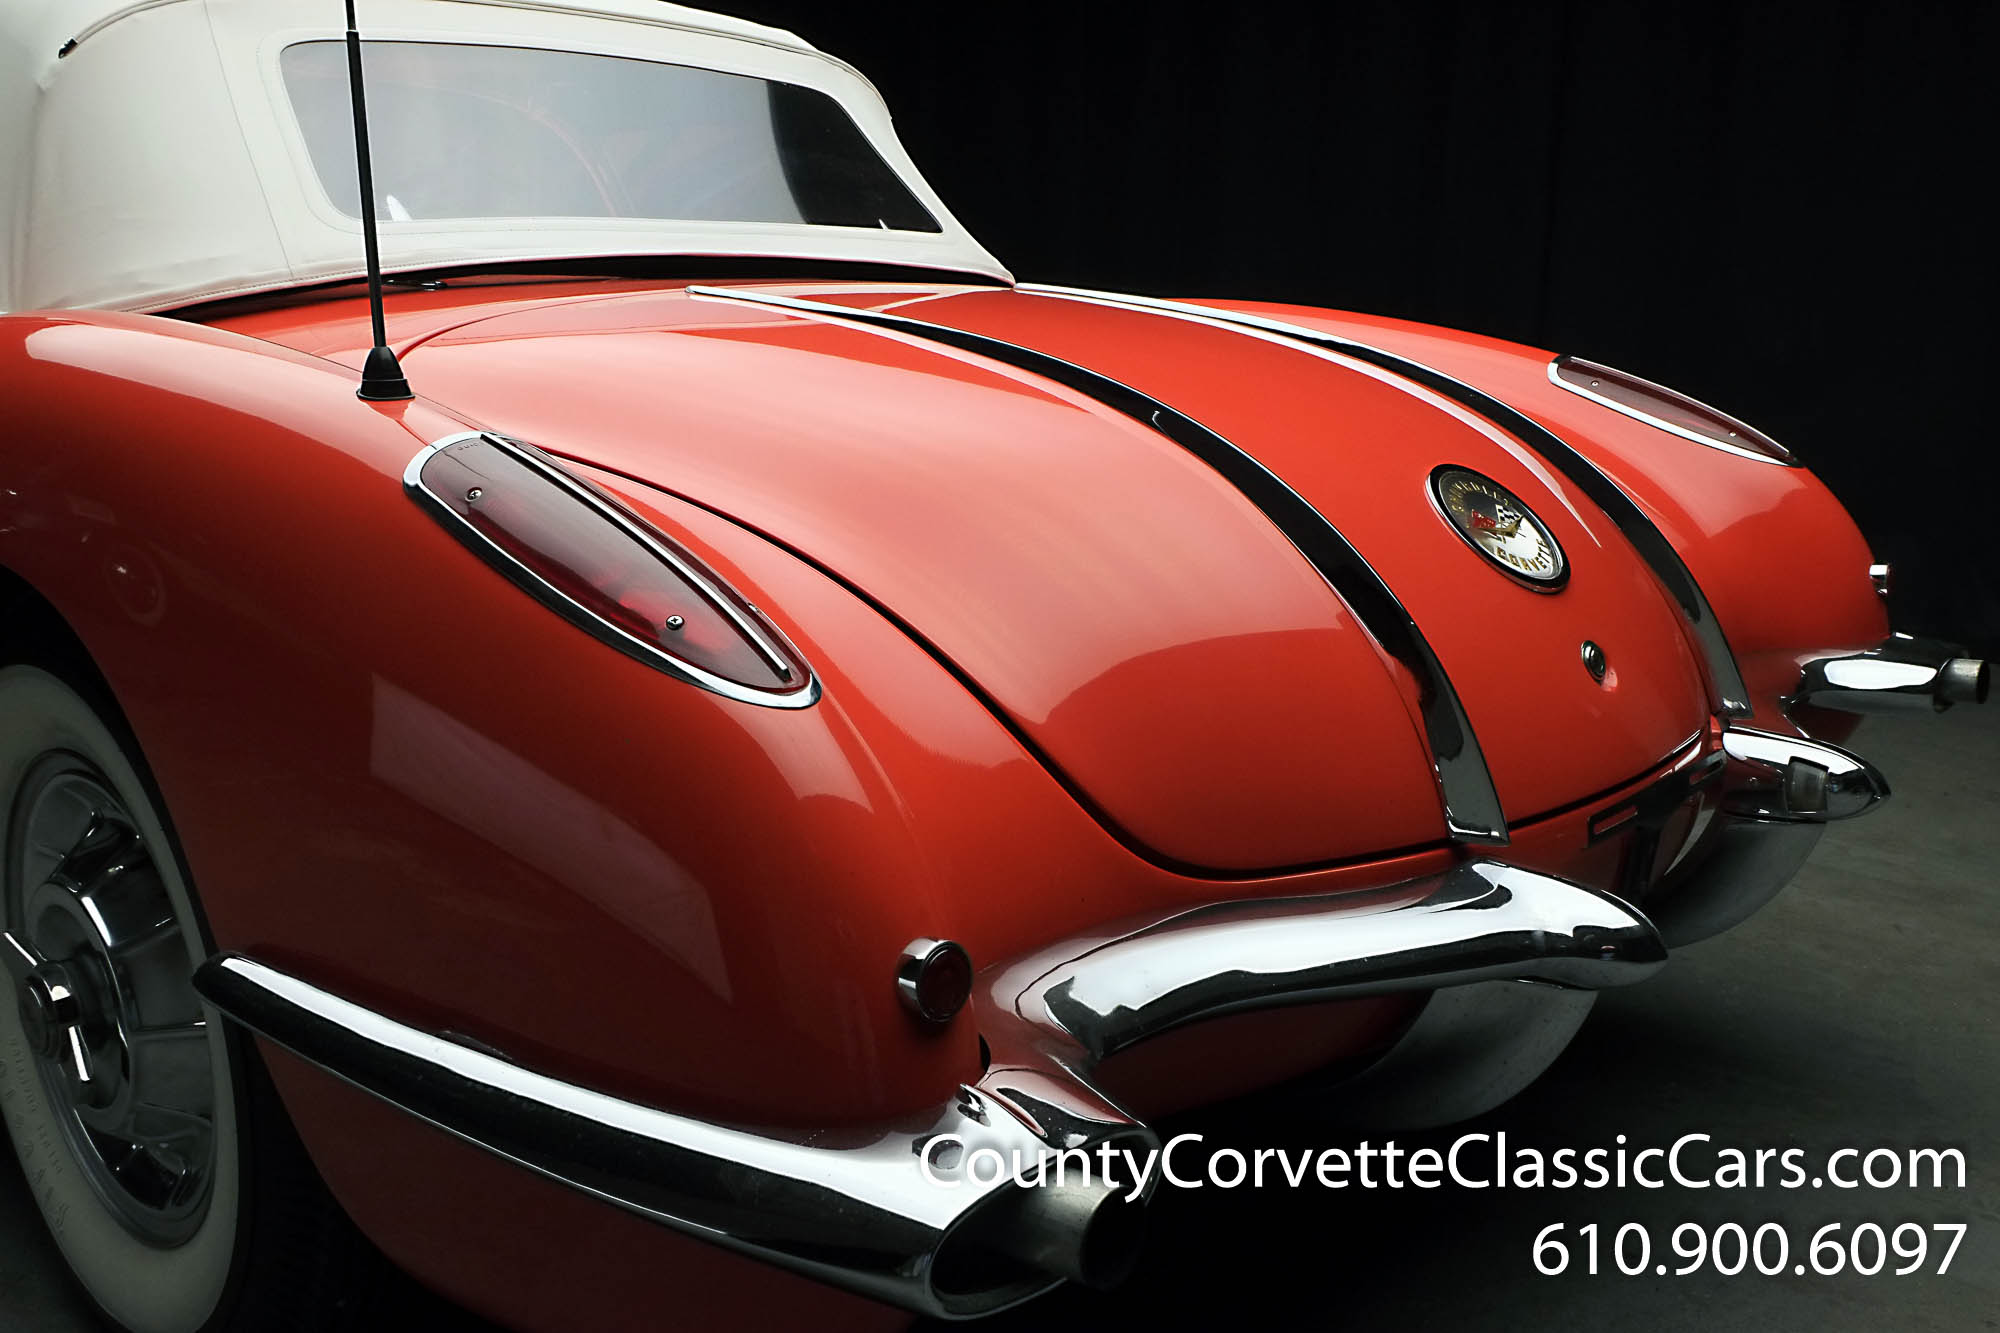 1958-Corvette-Convertible (24 of 62).jpg